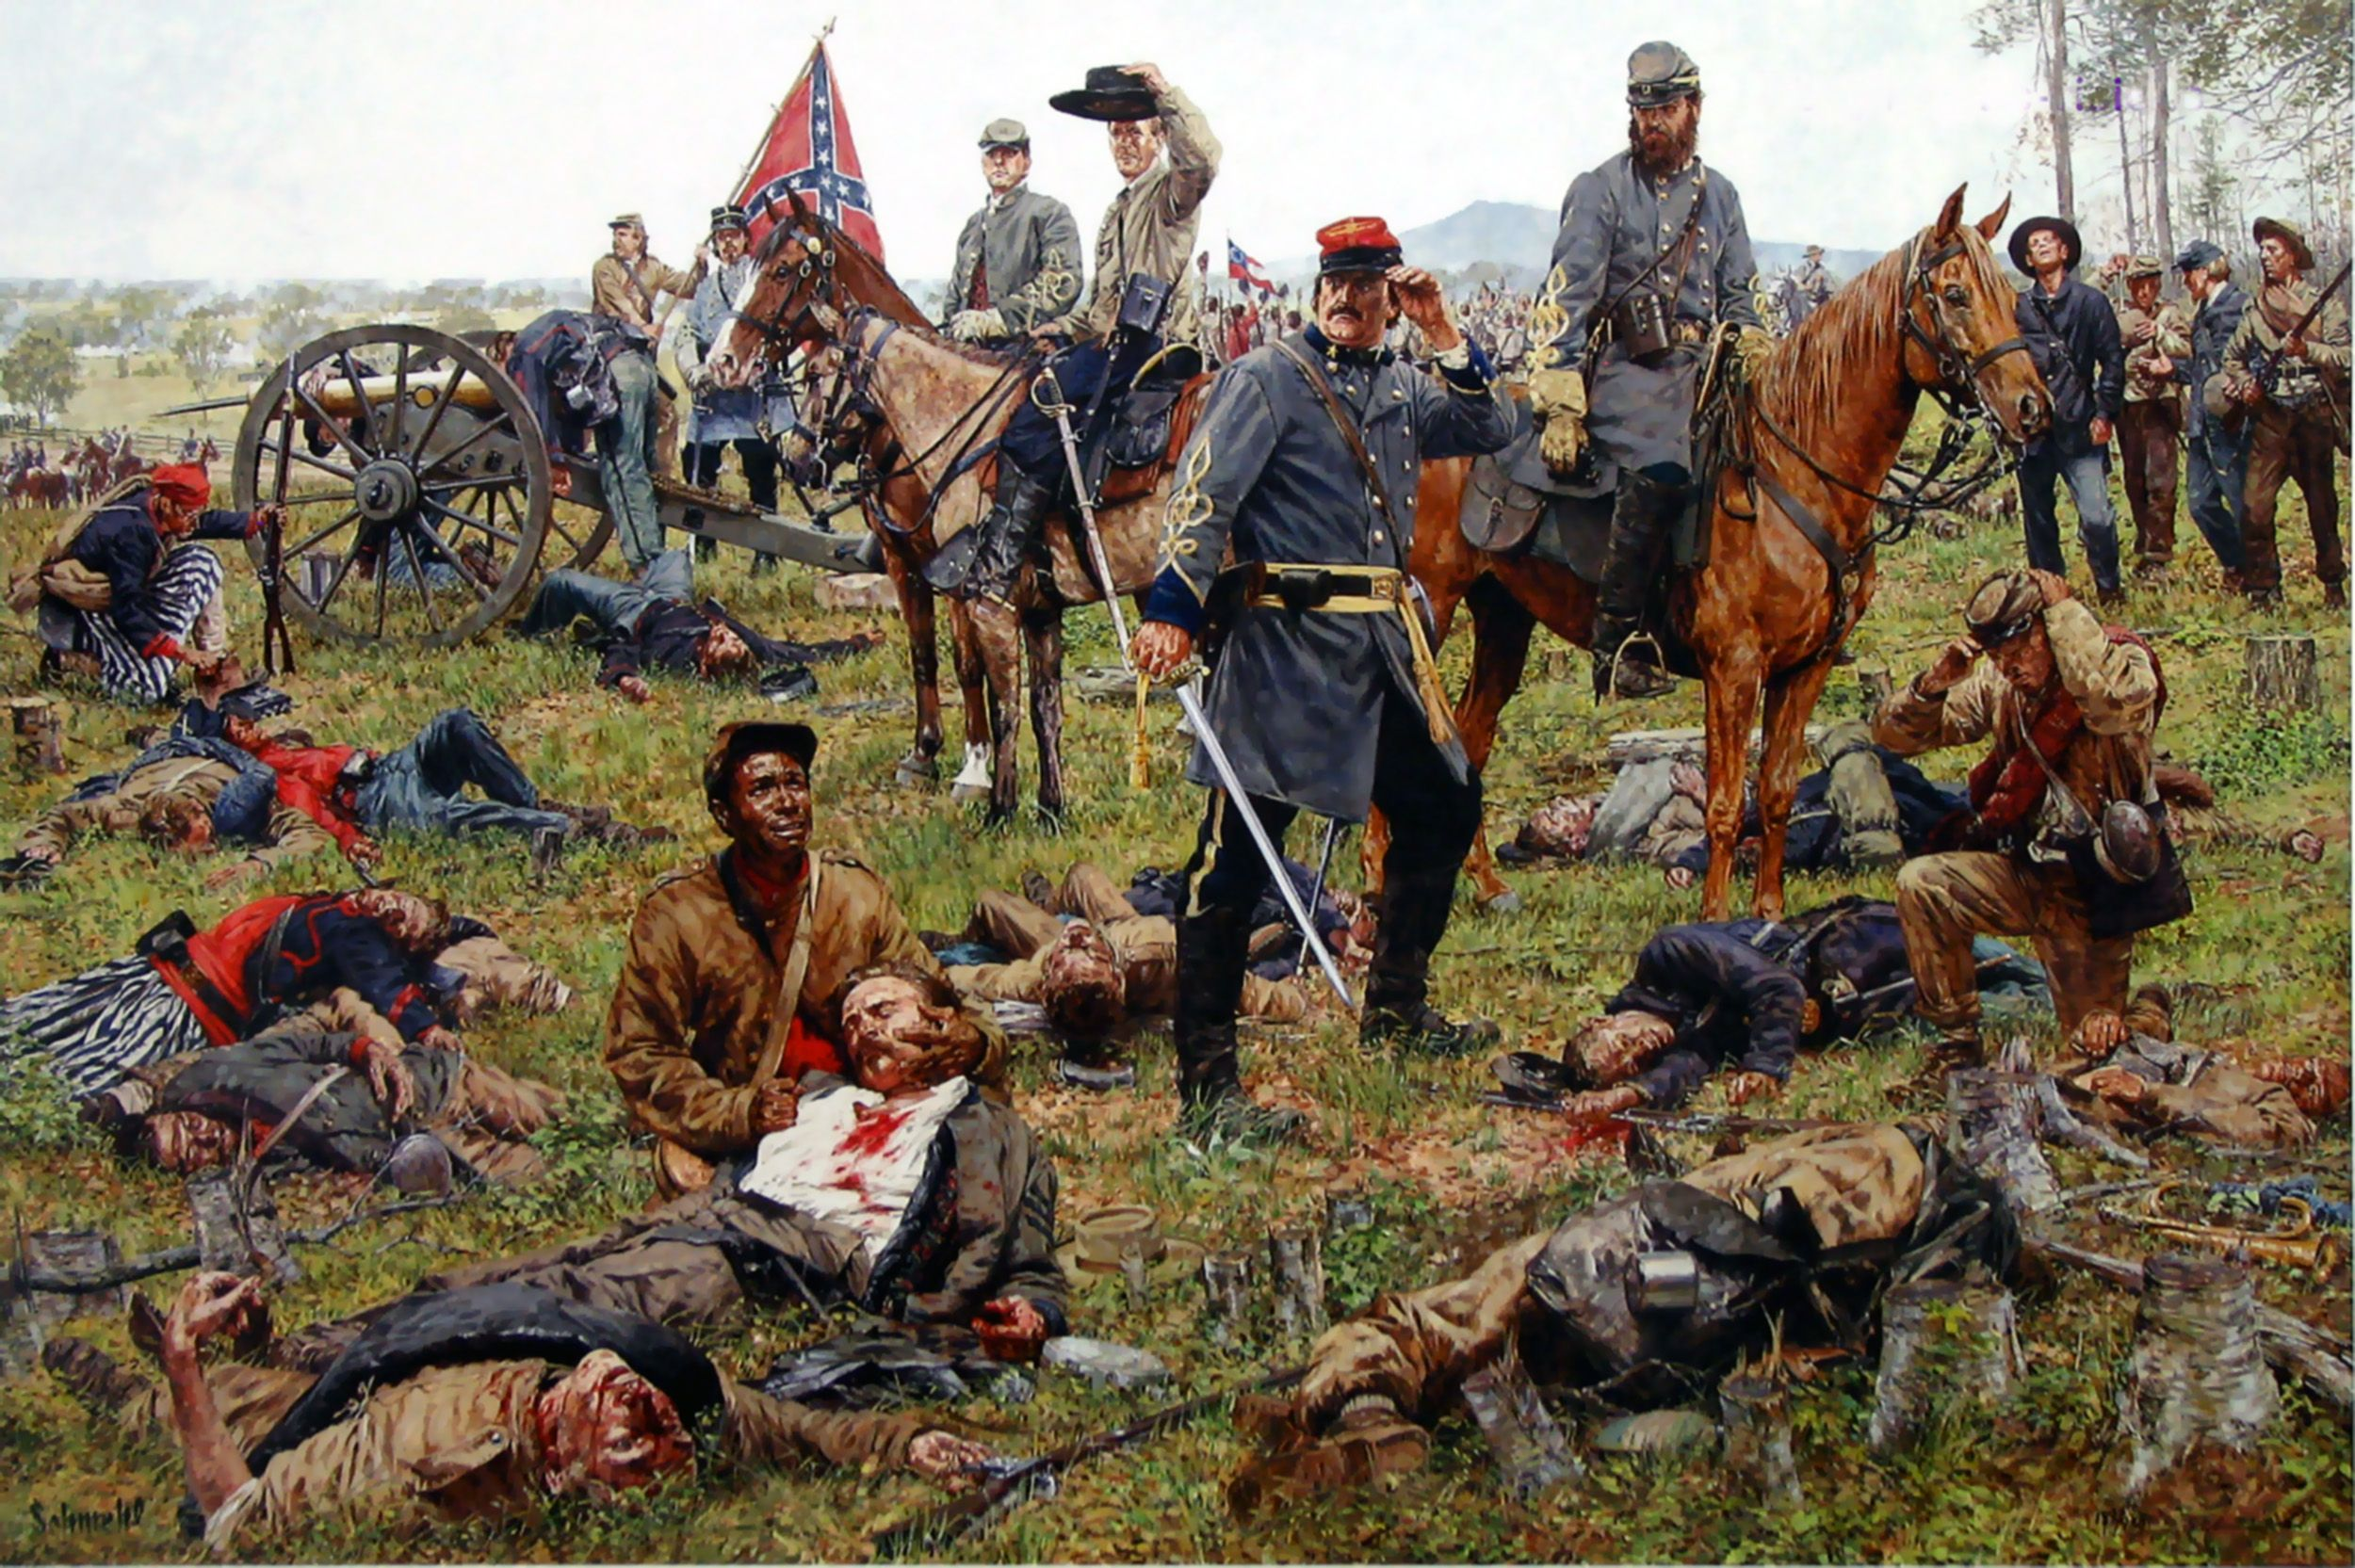 the battle of the confederate army The confederate army was created out of the south's commitment to white supremacy, as the atlantic's ta-nehisi coates has exhaustively documented but the flag that came to represent that army.